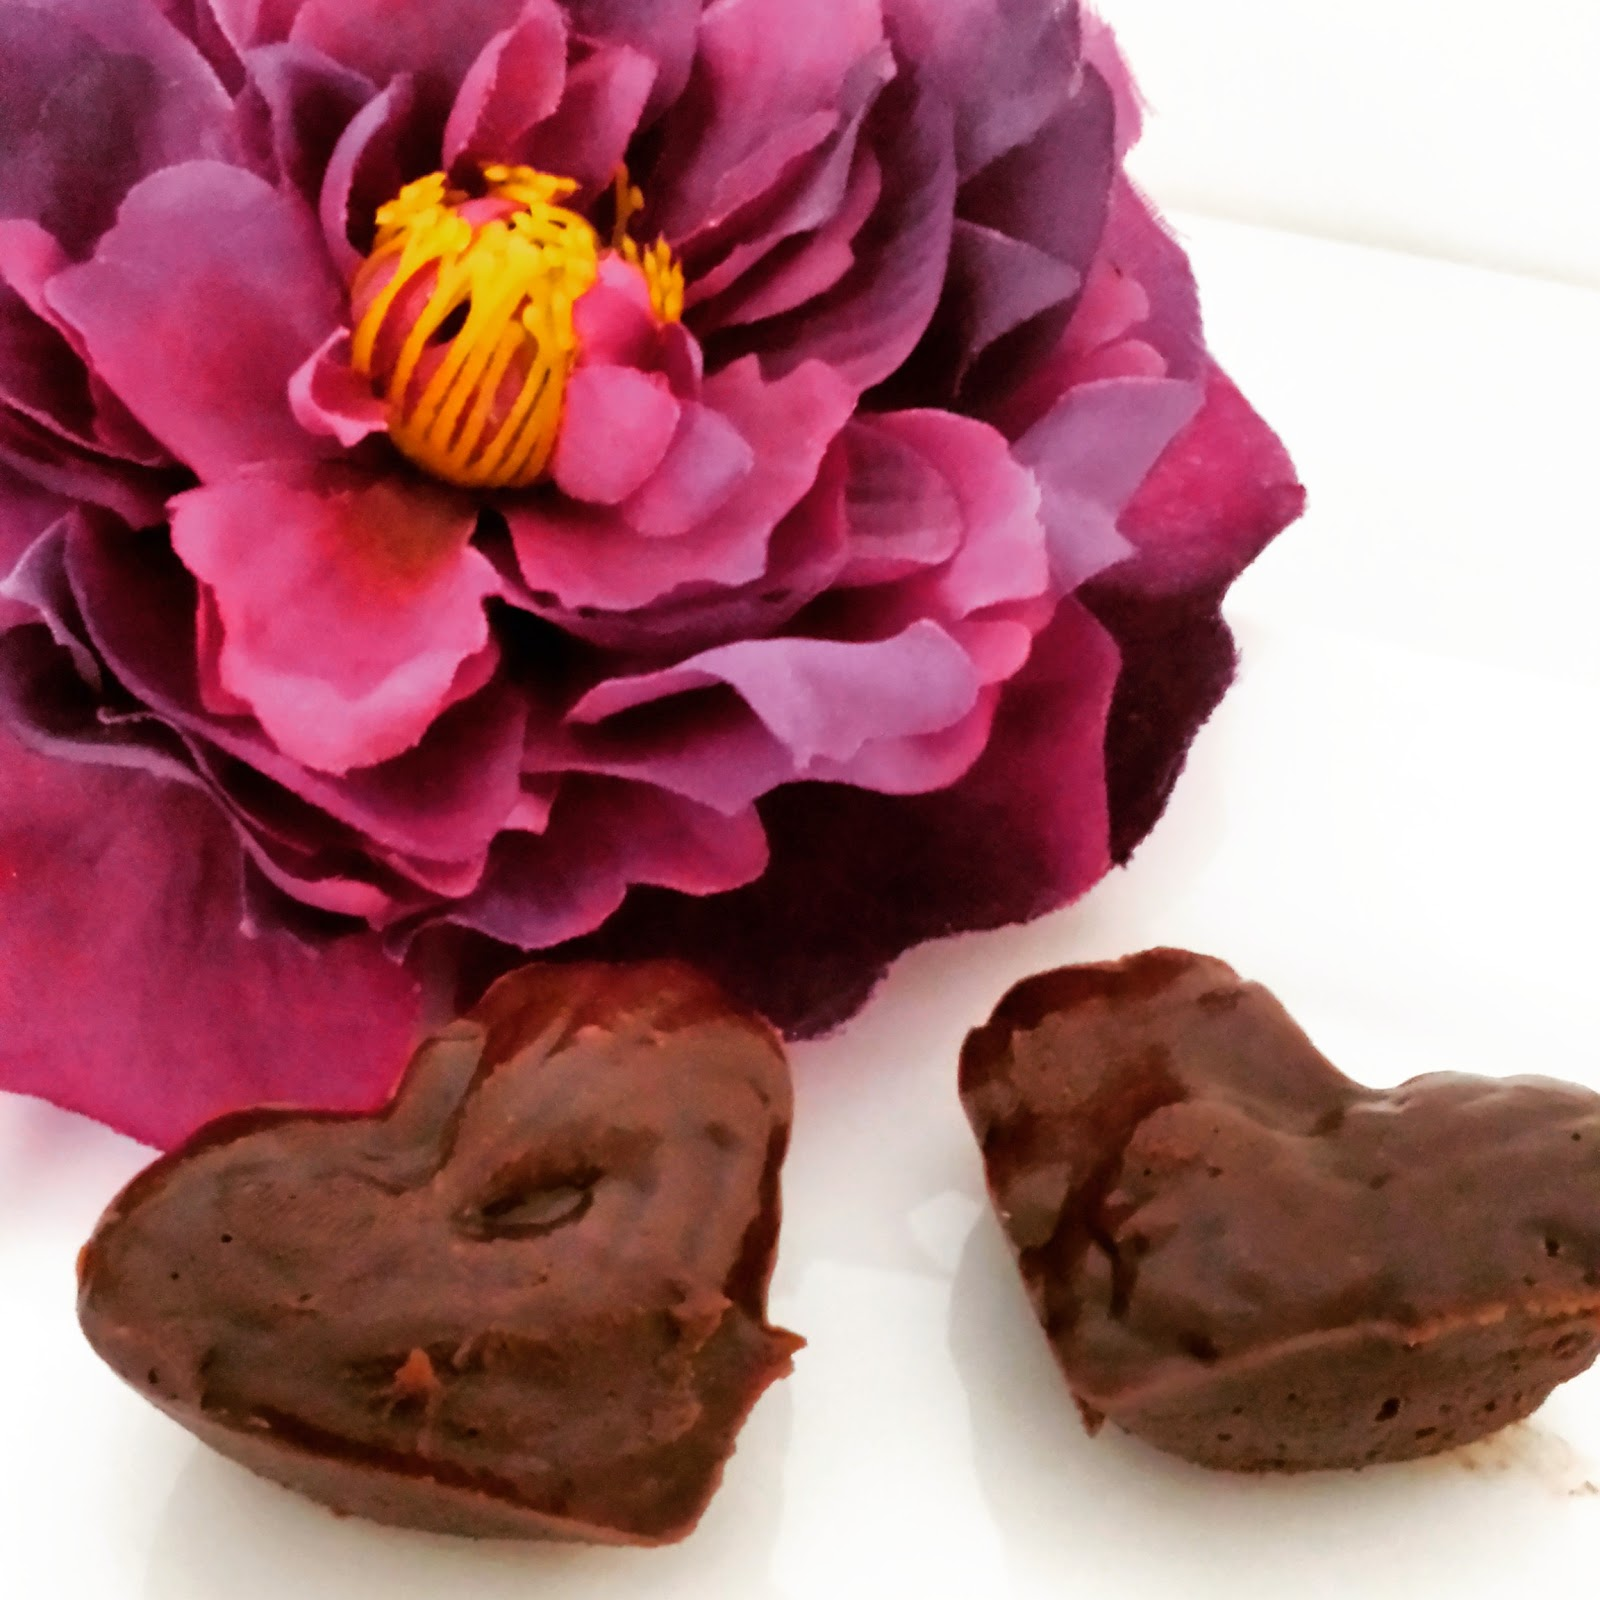 Healthilicious Life - Chocolate Coffee Fudge